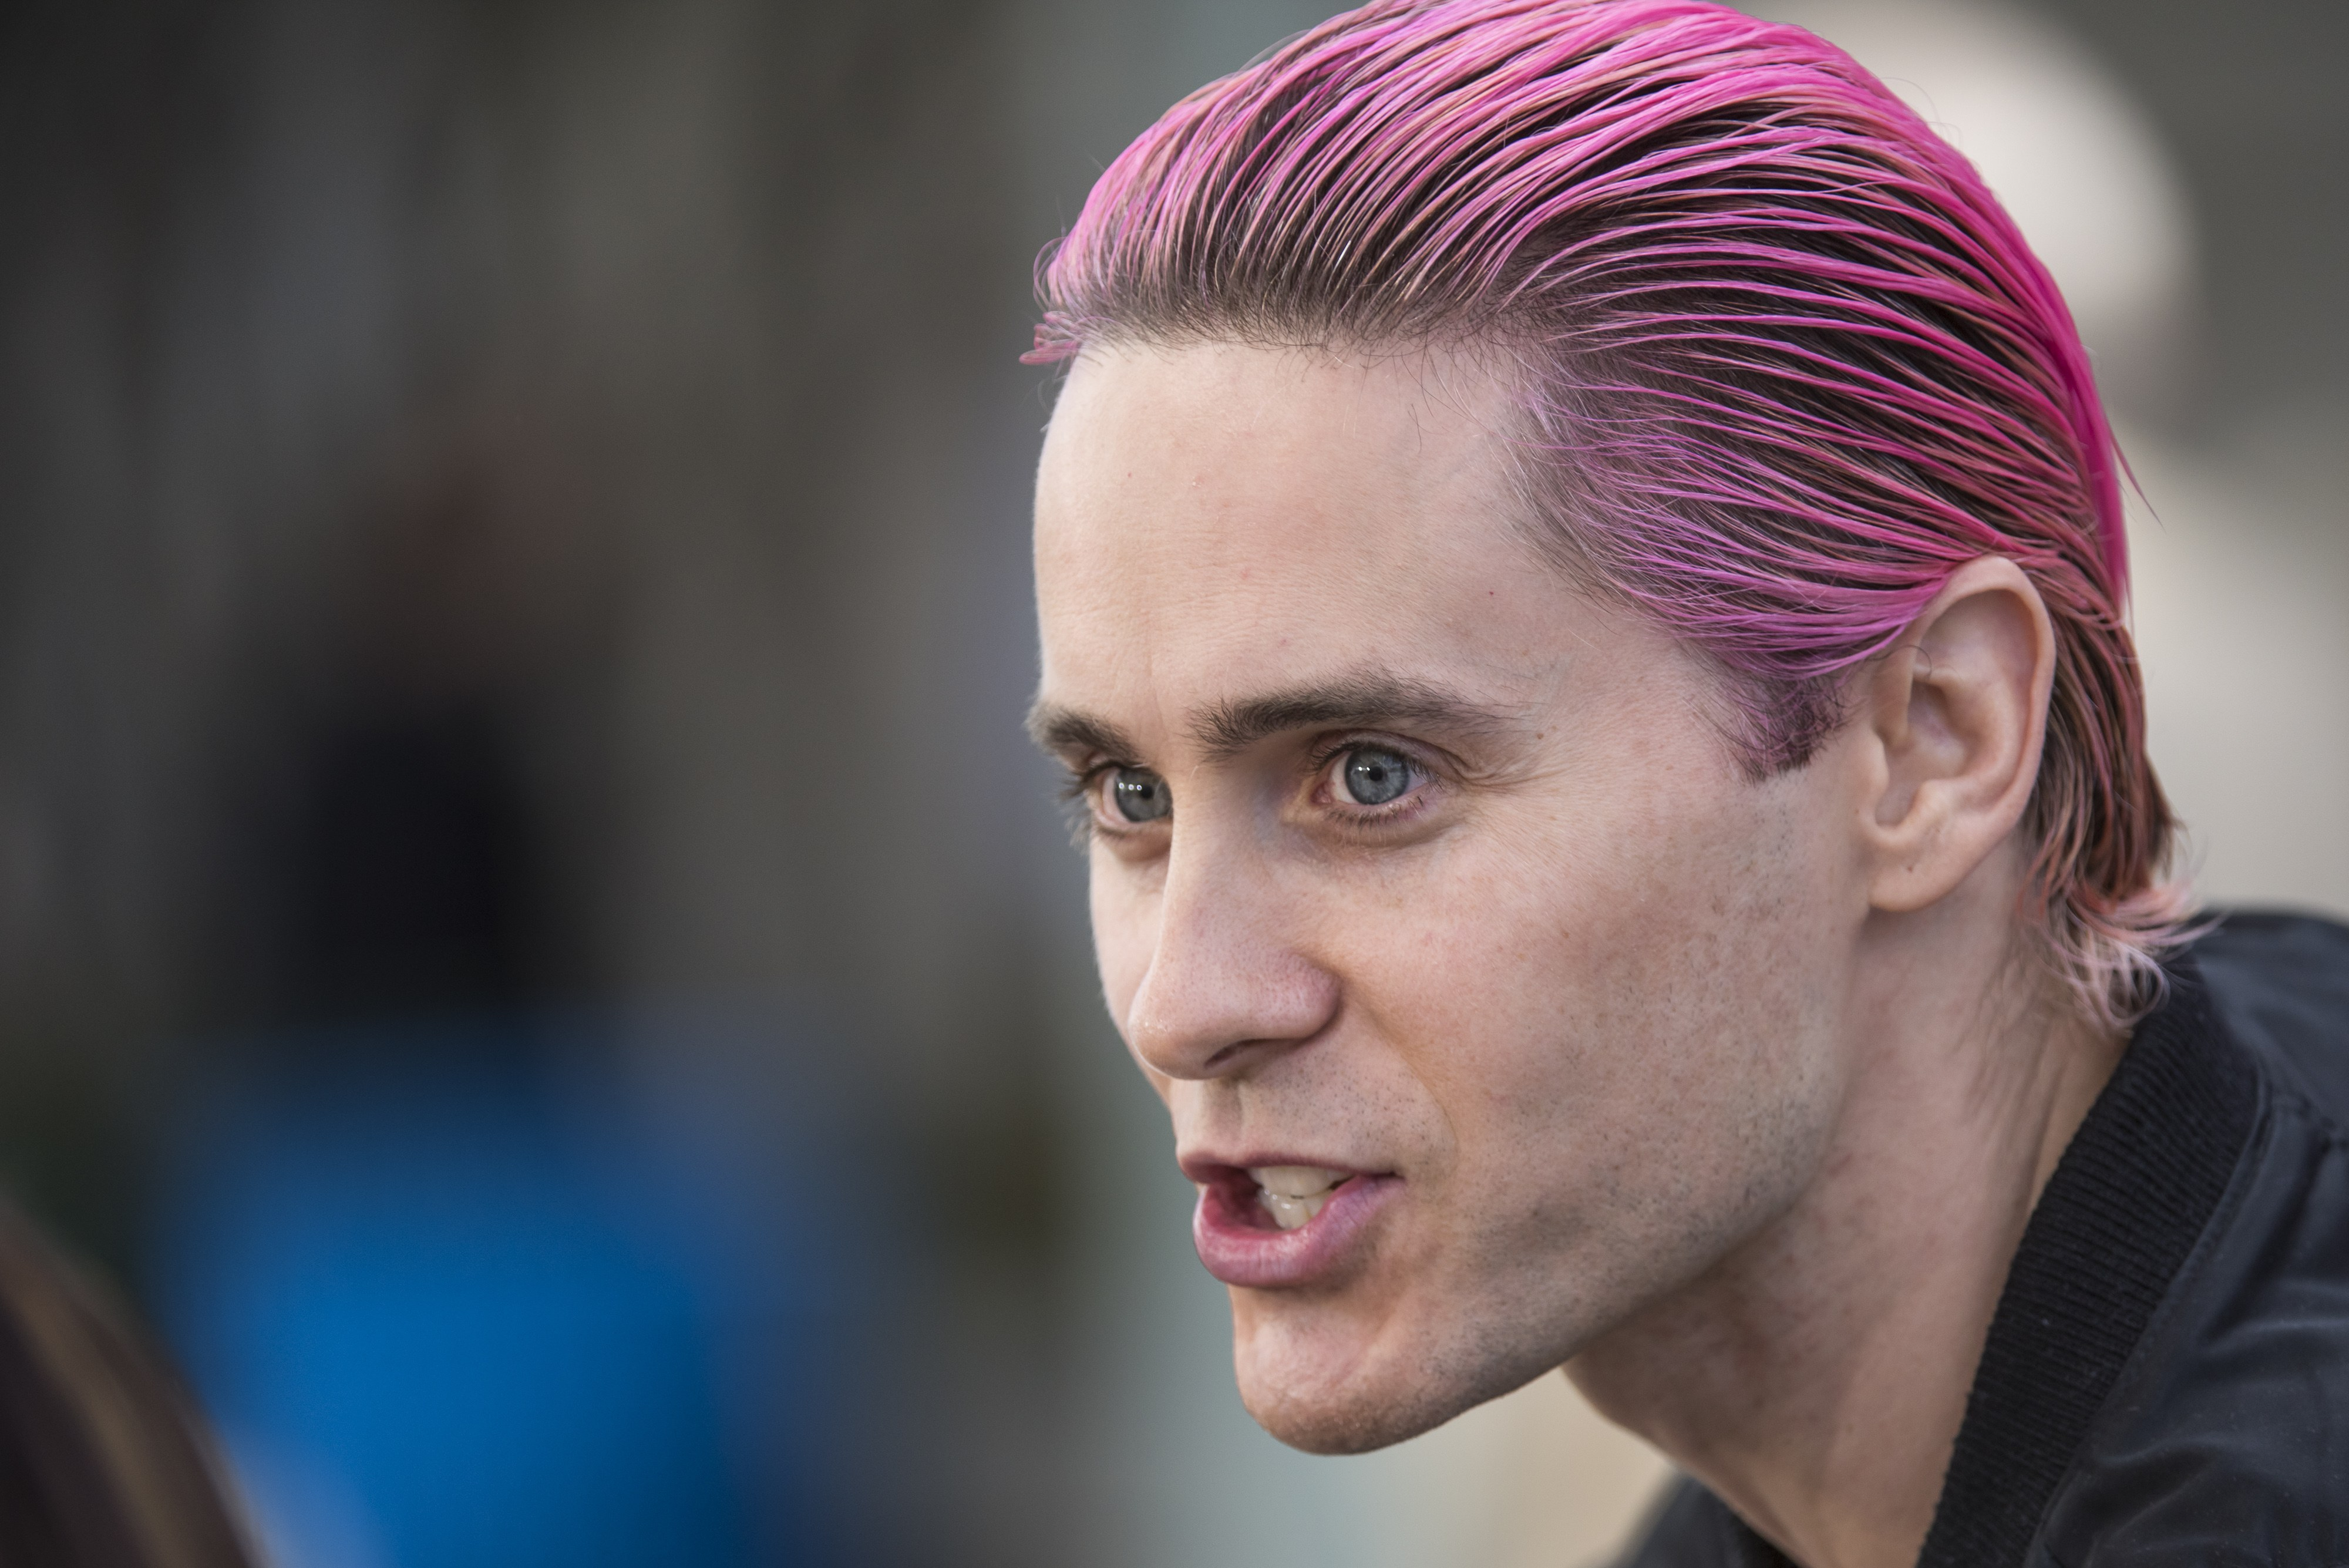 jared leto pink hair wallpaper 68642